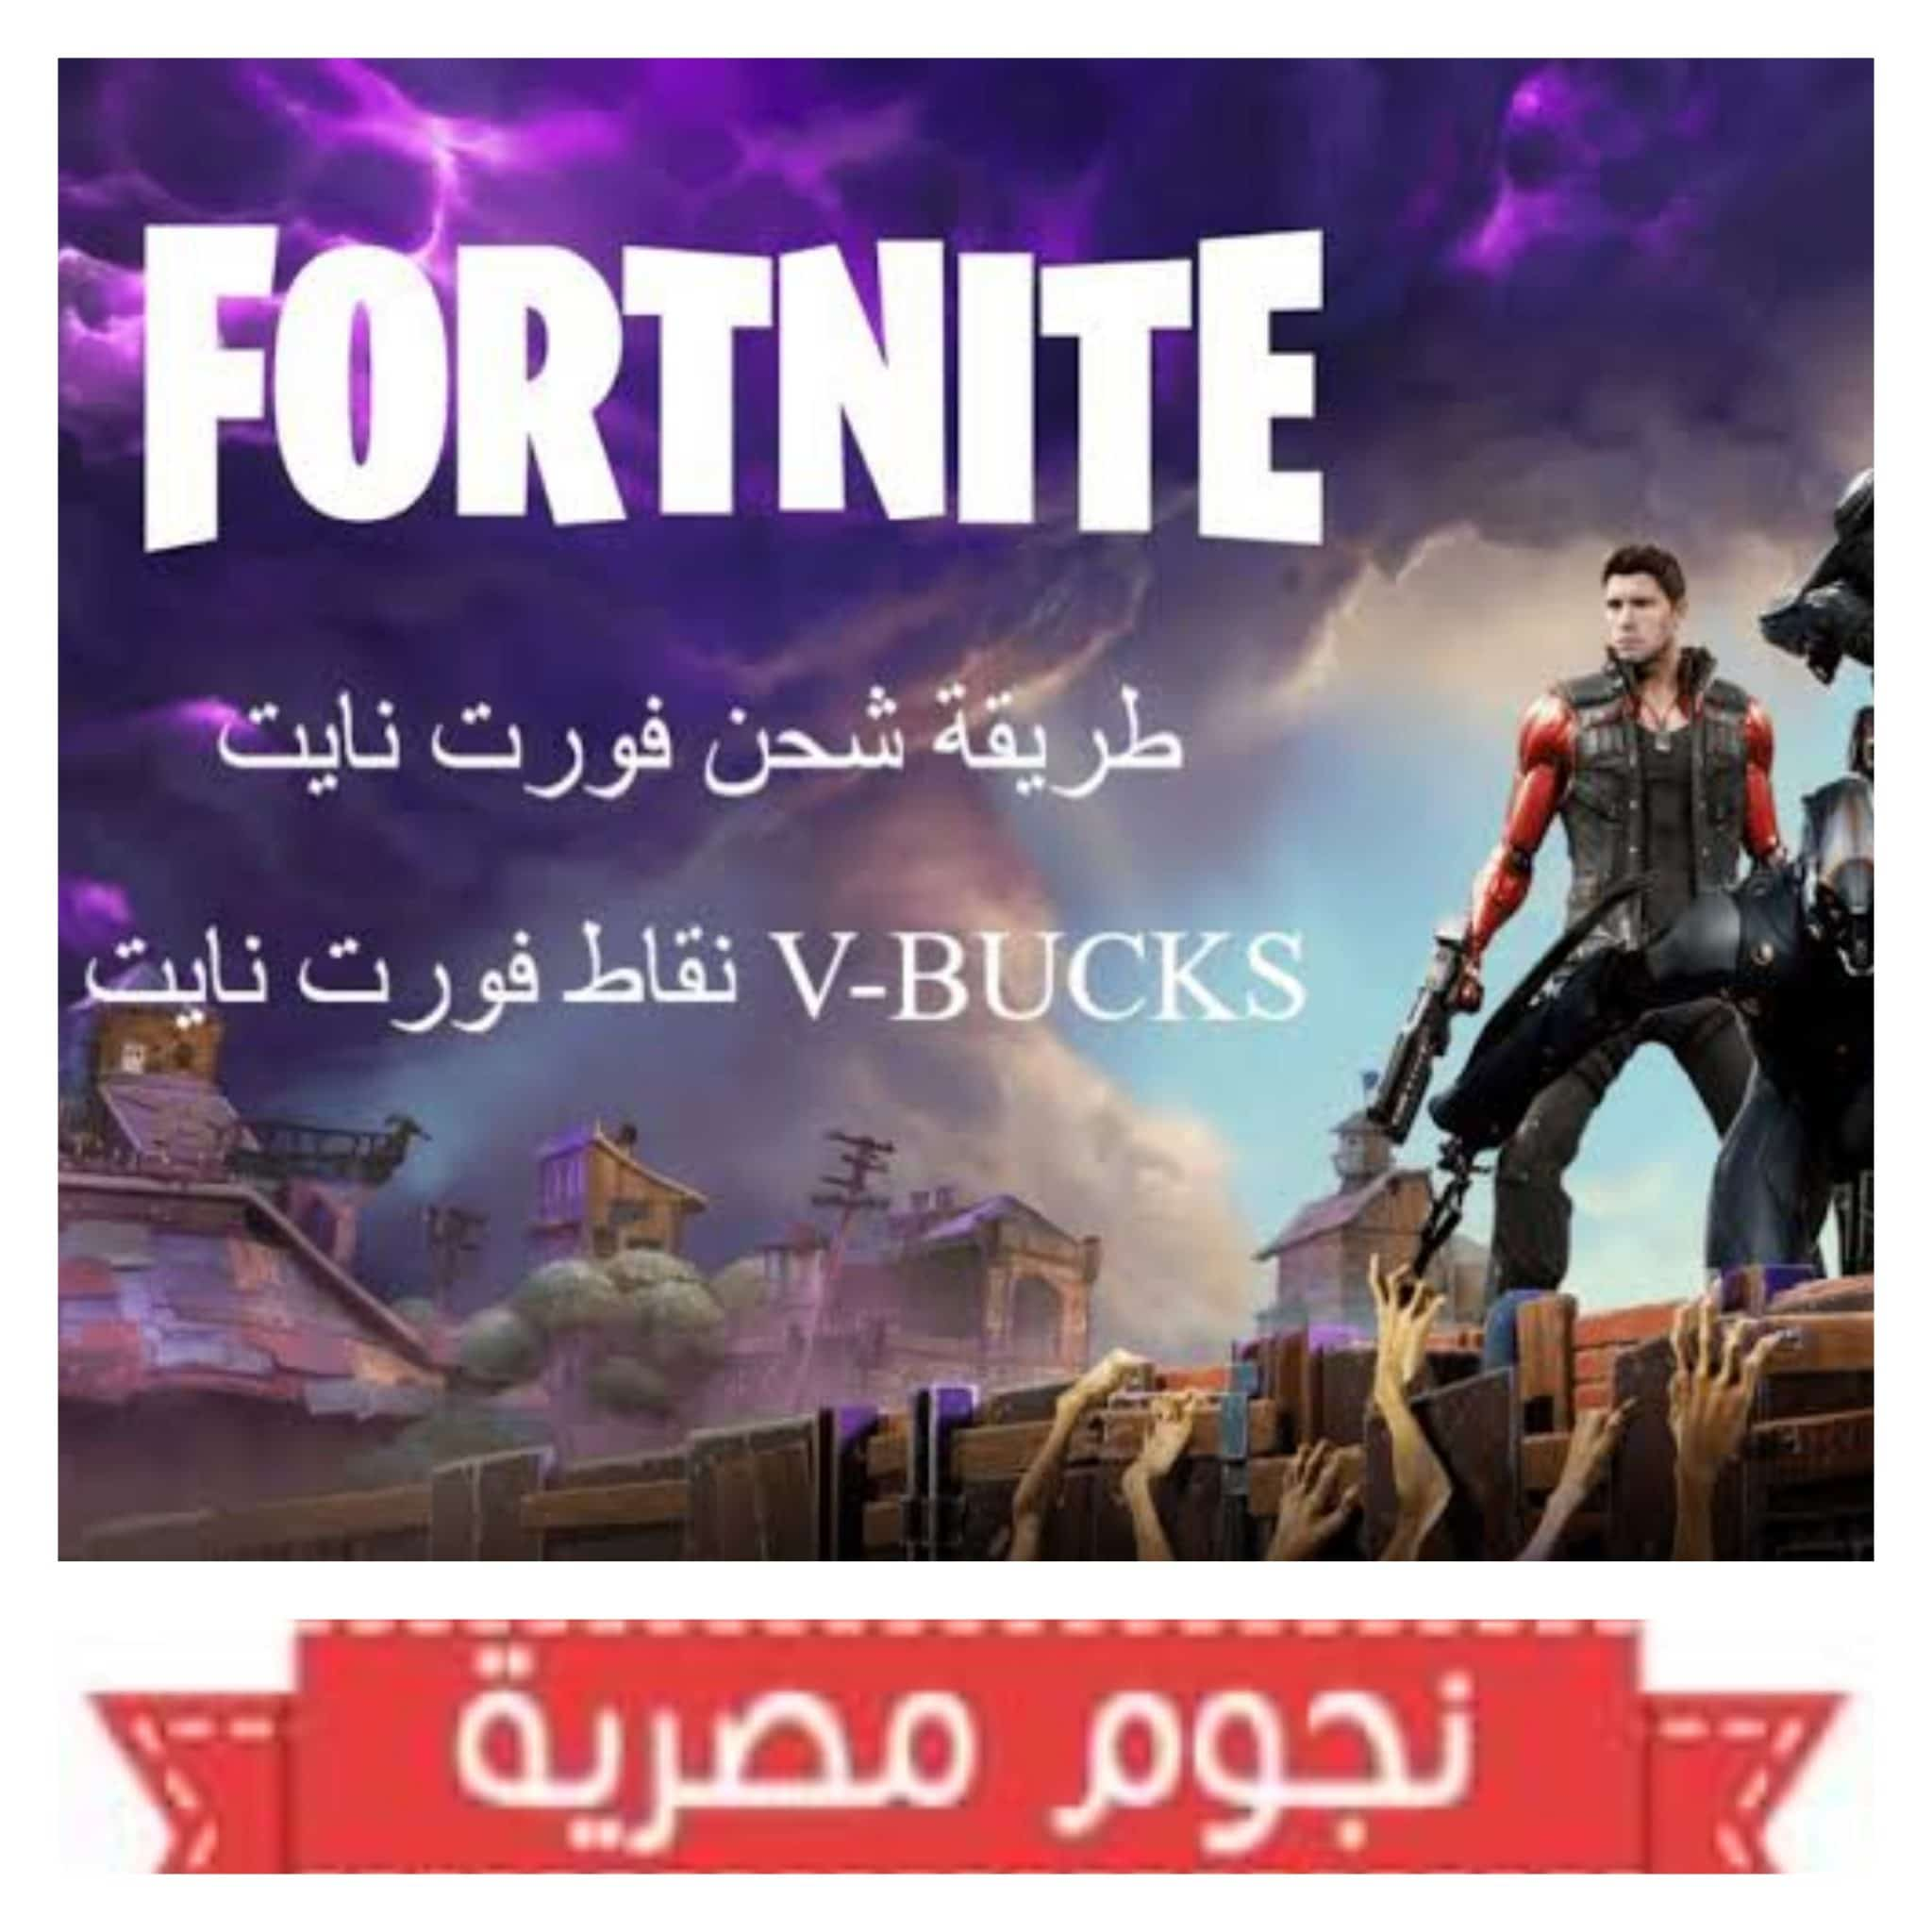 FASTEST WAY TO SHIPPING FORTNITE BUCKS 2021 FOR FREE AND GET THOUSANDS OF FEBOX WITHIN 1 MINUTES 10/10/2021 - 12:42 AM